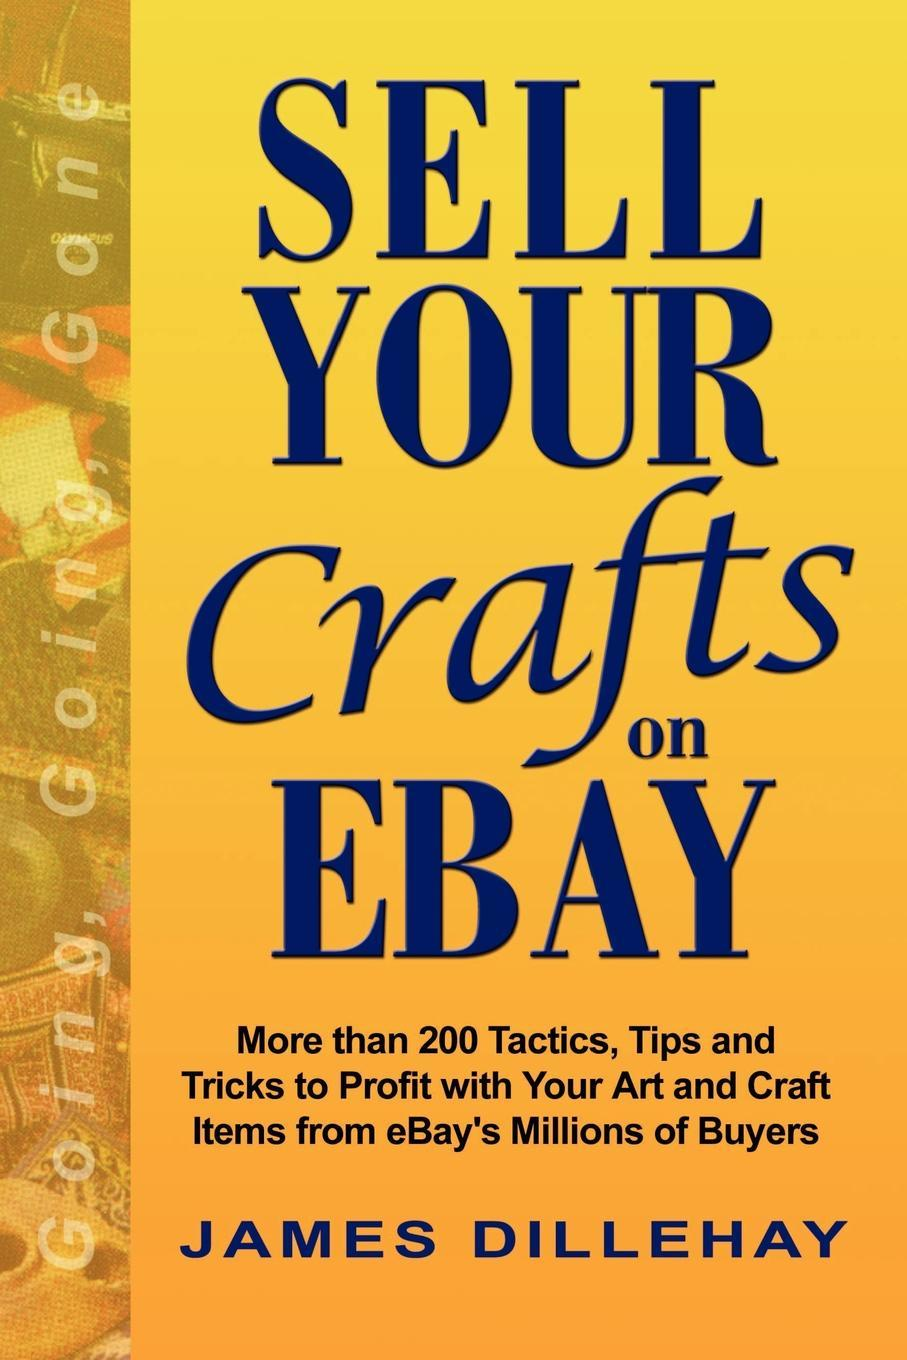 James Dillehay Sell Your Crafts on eBay ebay